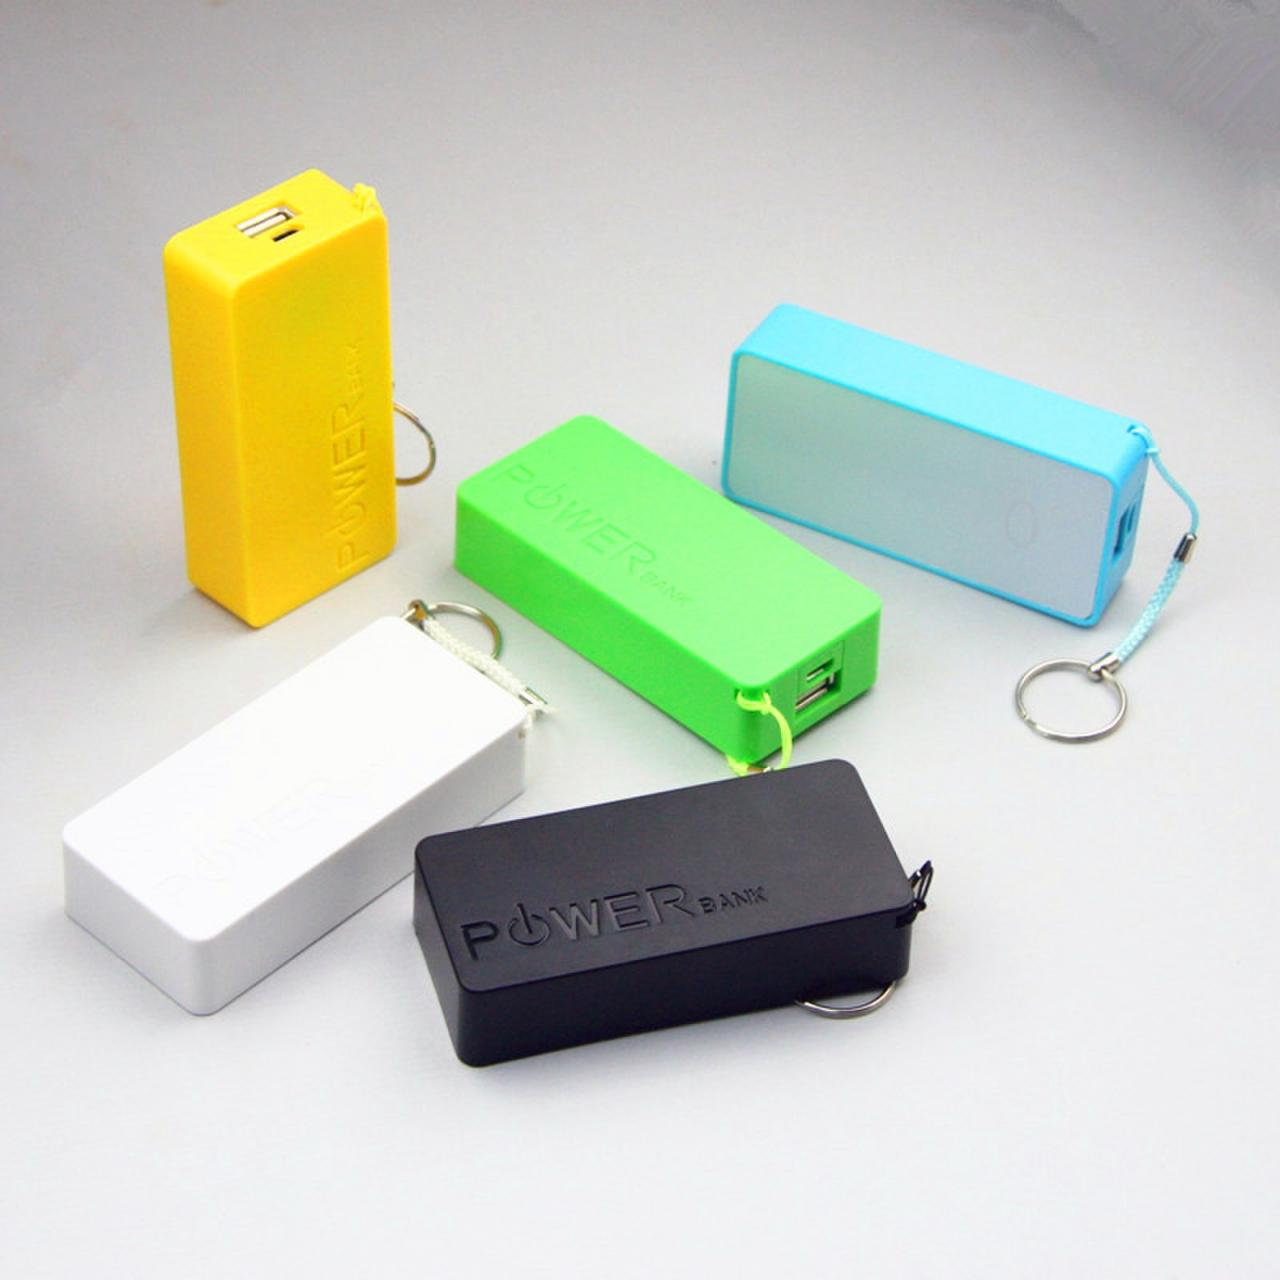 * FREE SHIP * Perfume Power Bank 5600mah Portable Battery Charger Powerbank For SAMSUNG IPHONE 4s 5 5C Nokia With USB Cable